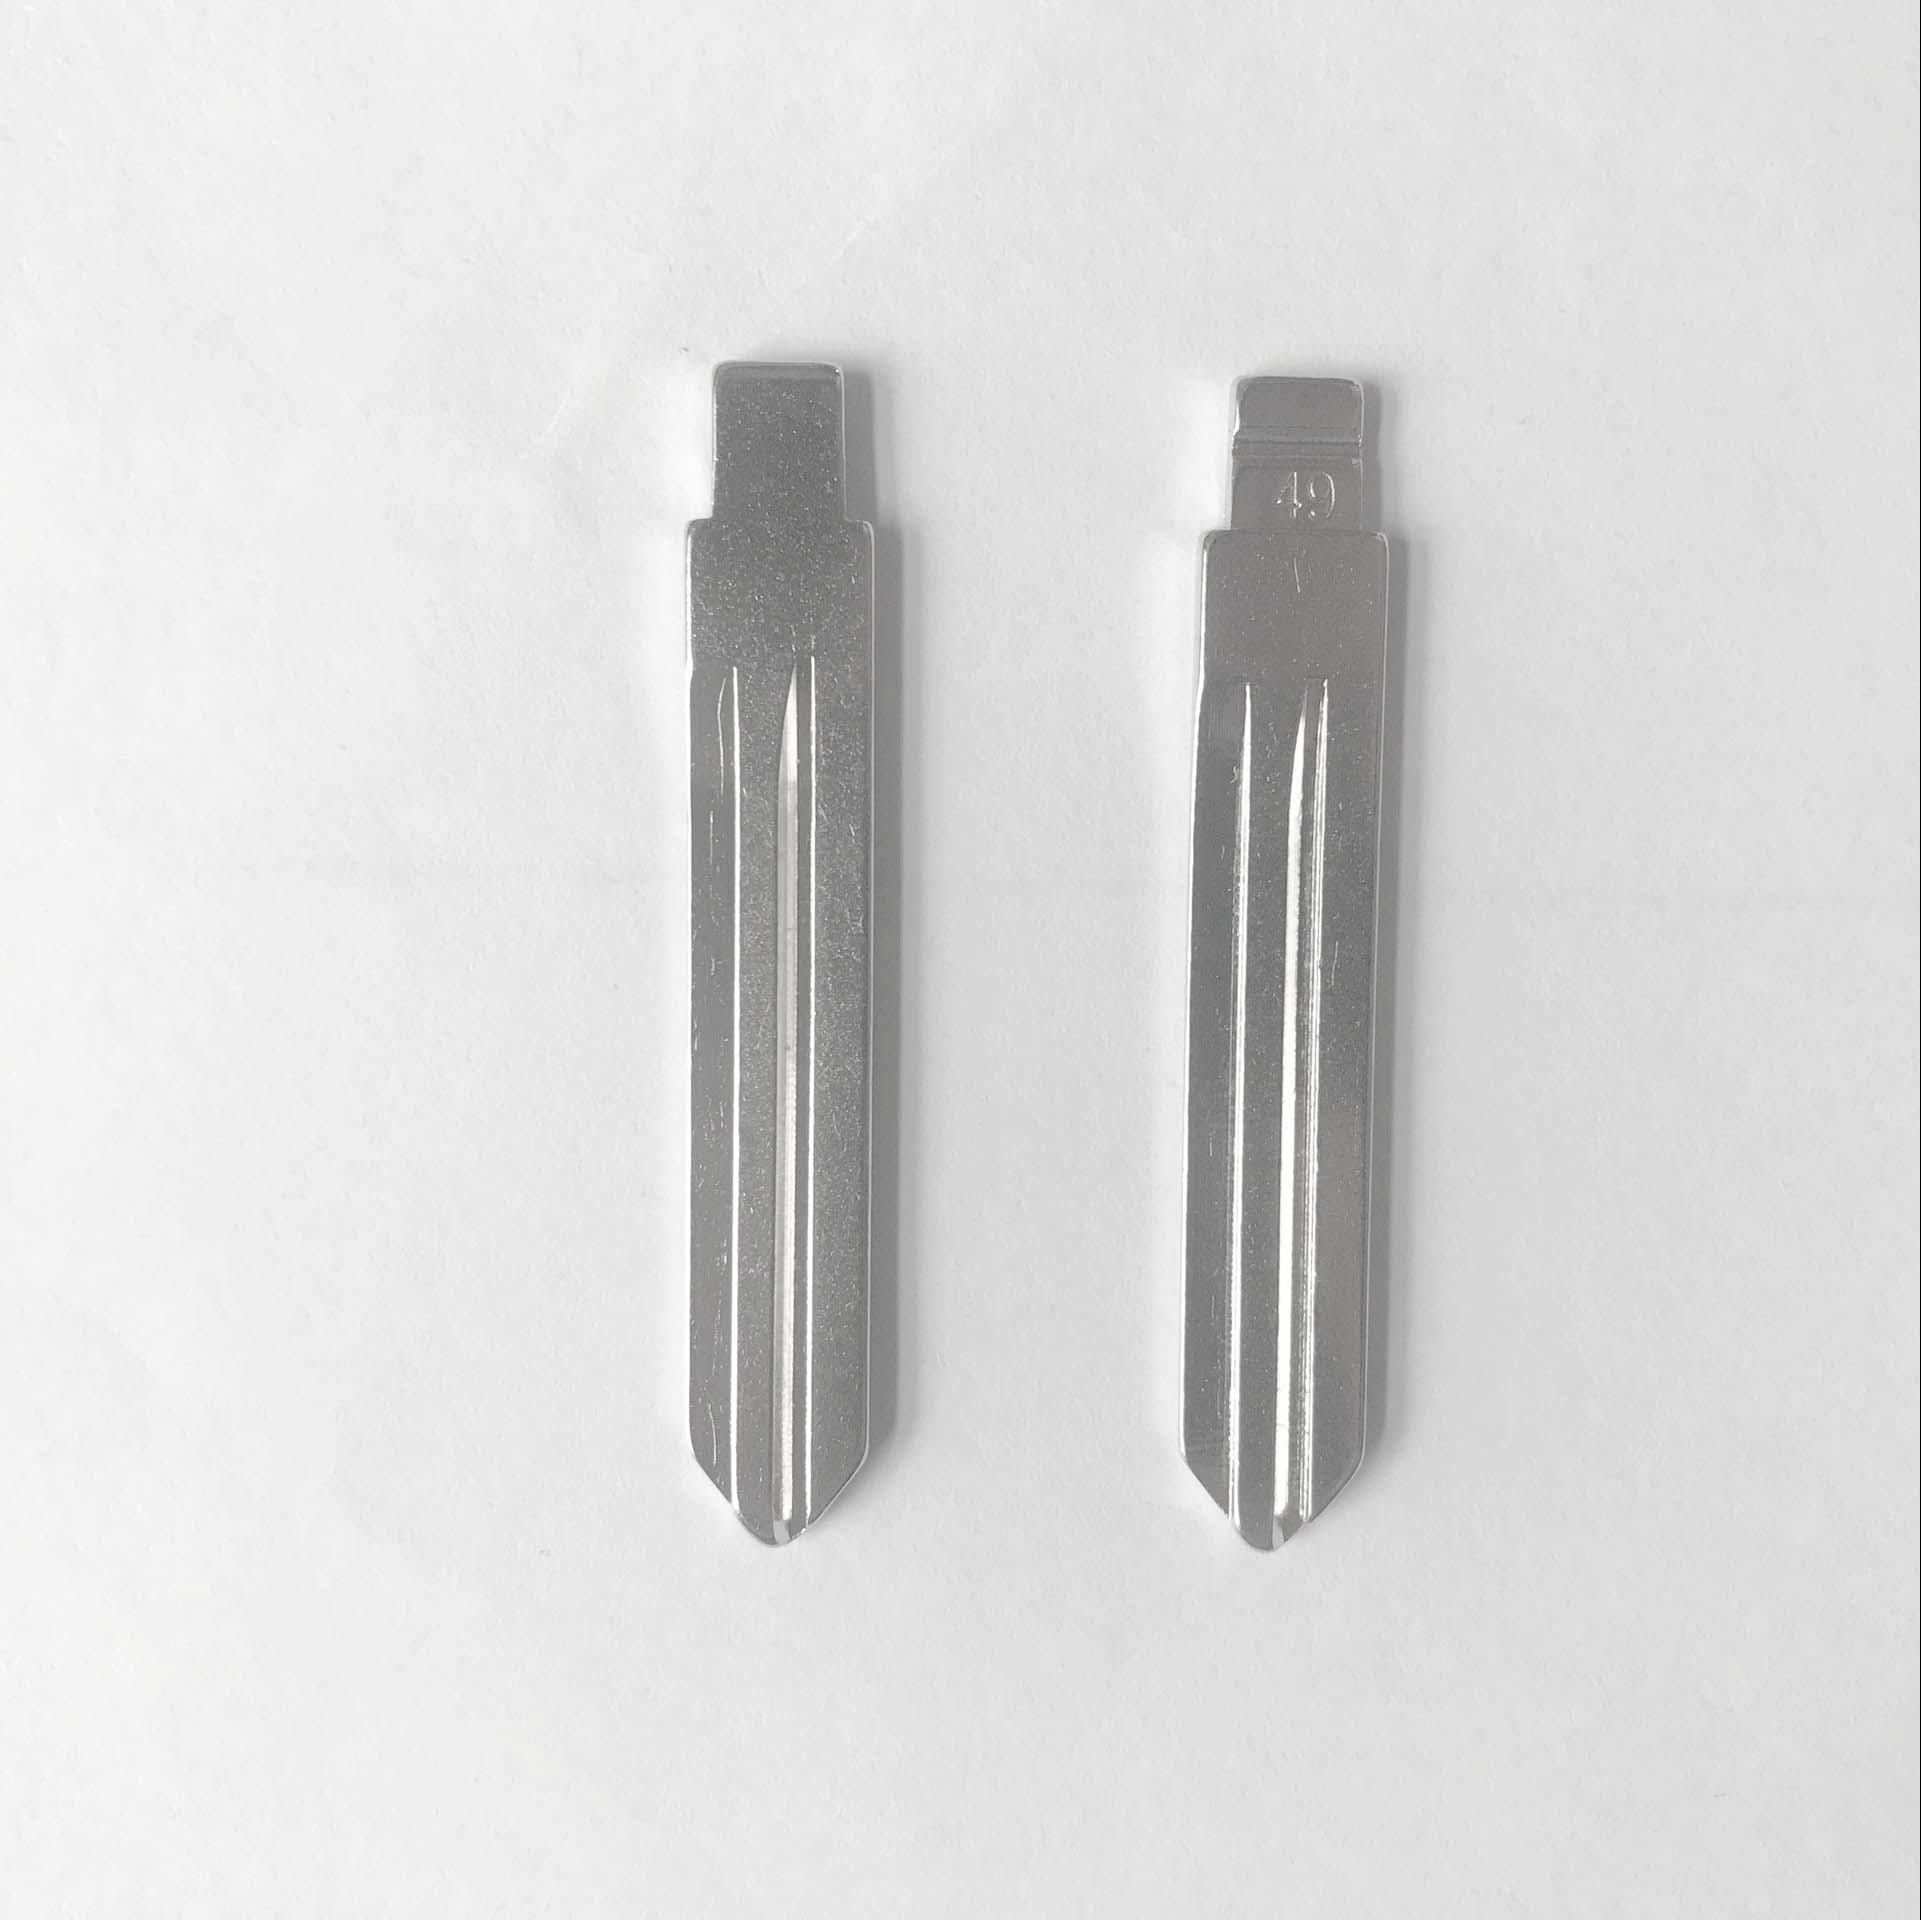 Key Blade 49# for Nissan M425  -  Pack of 10